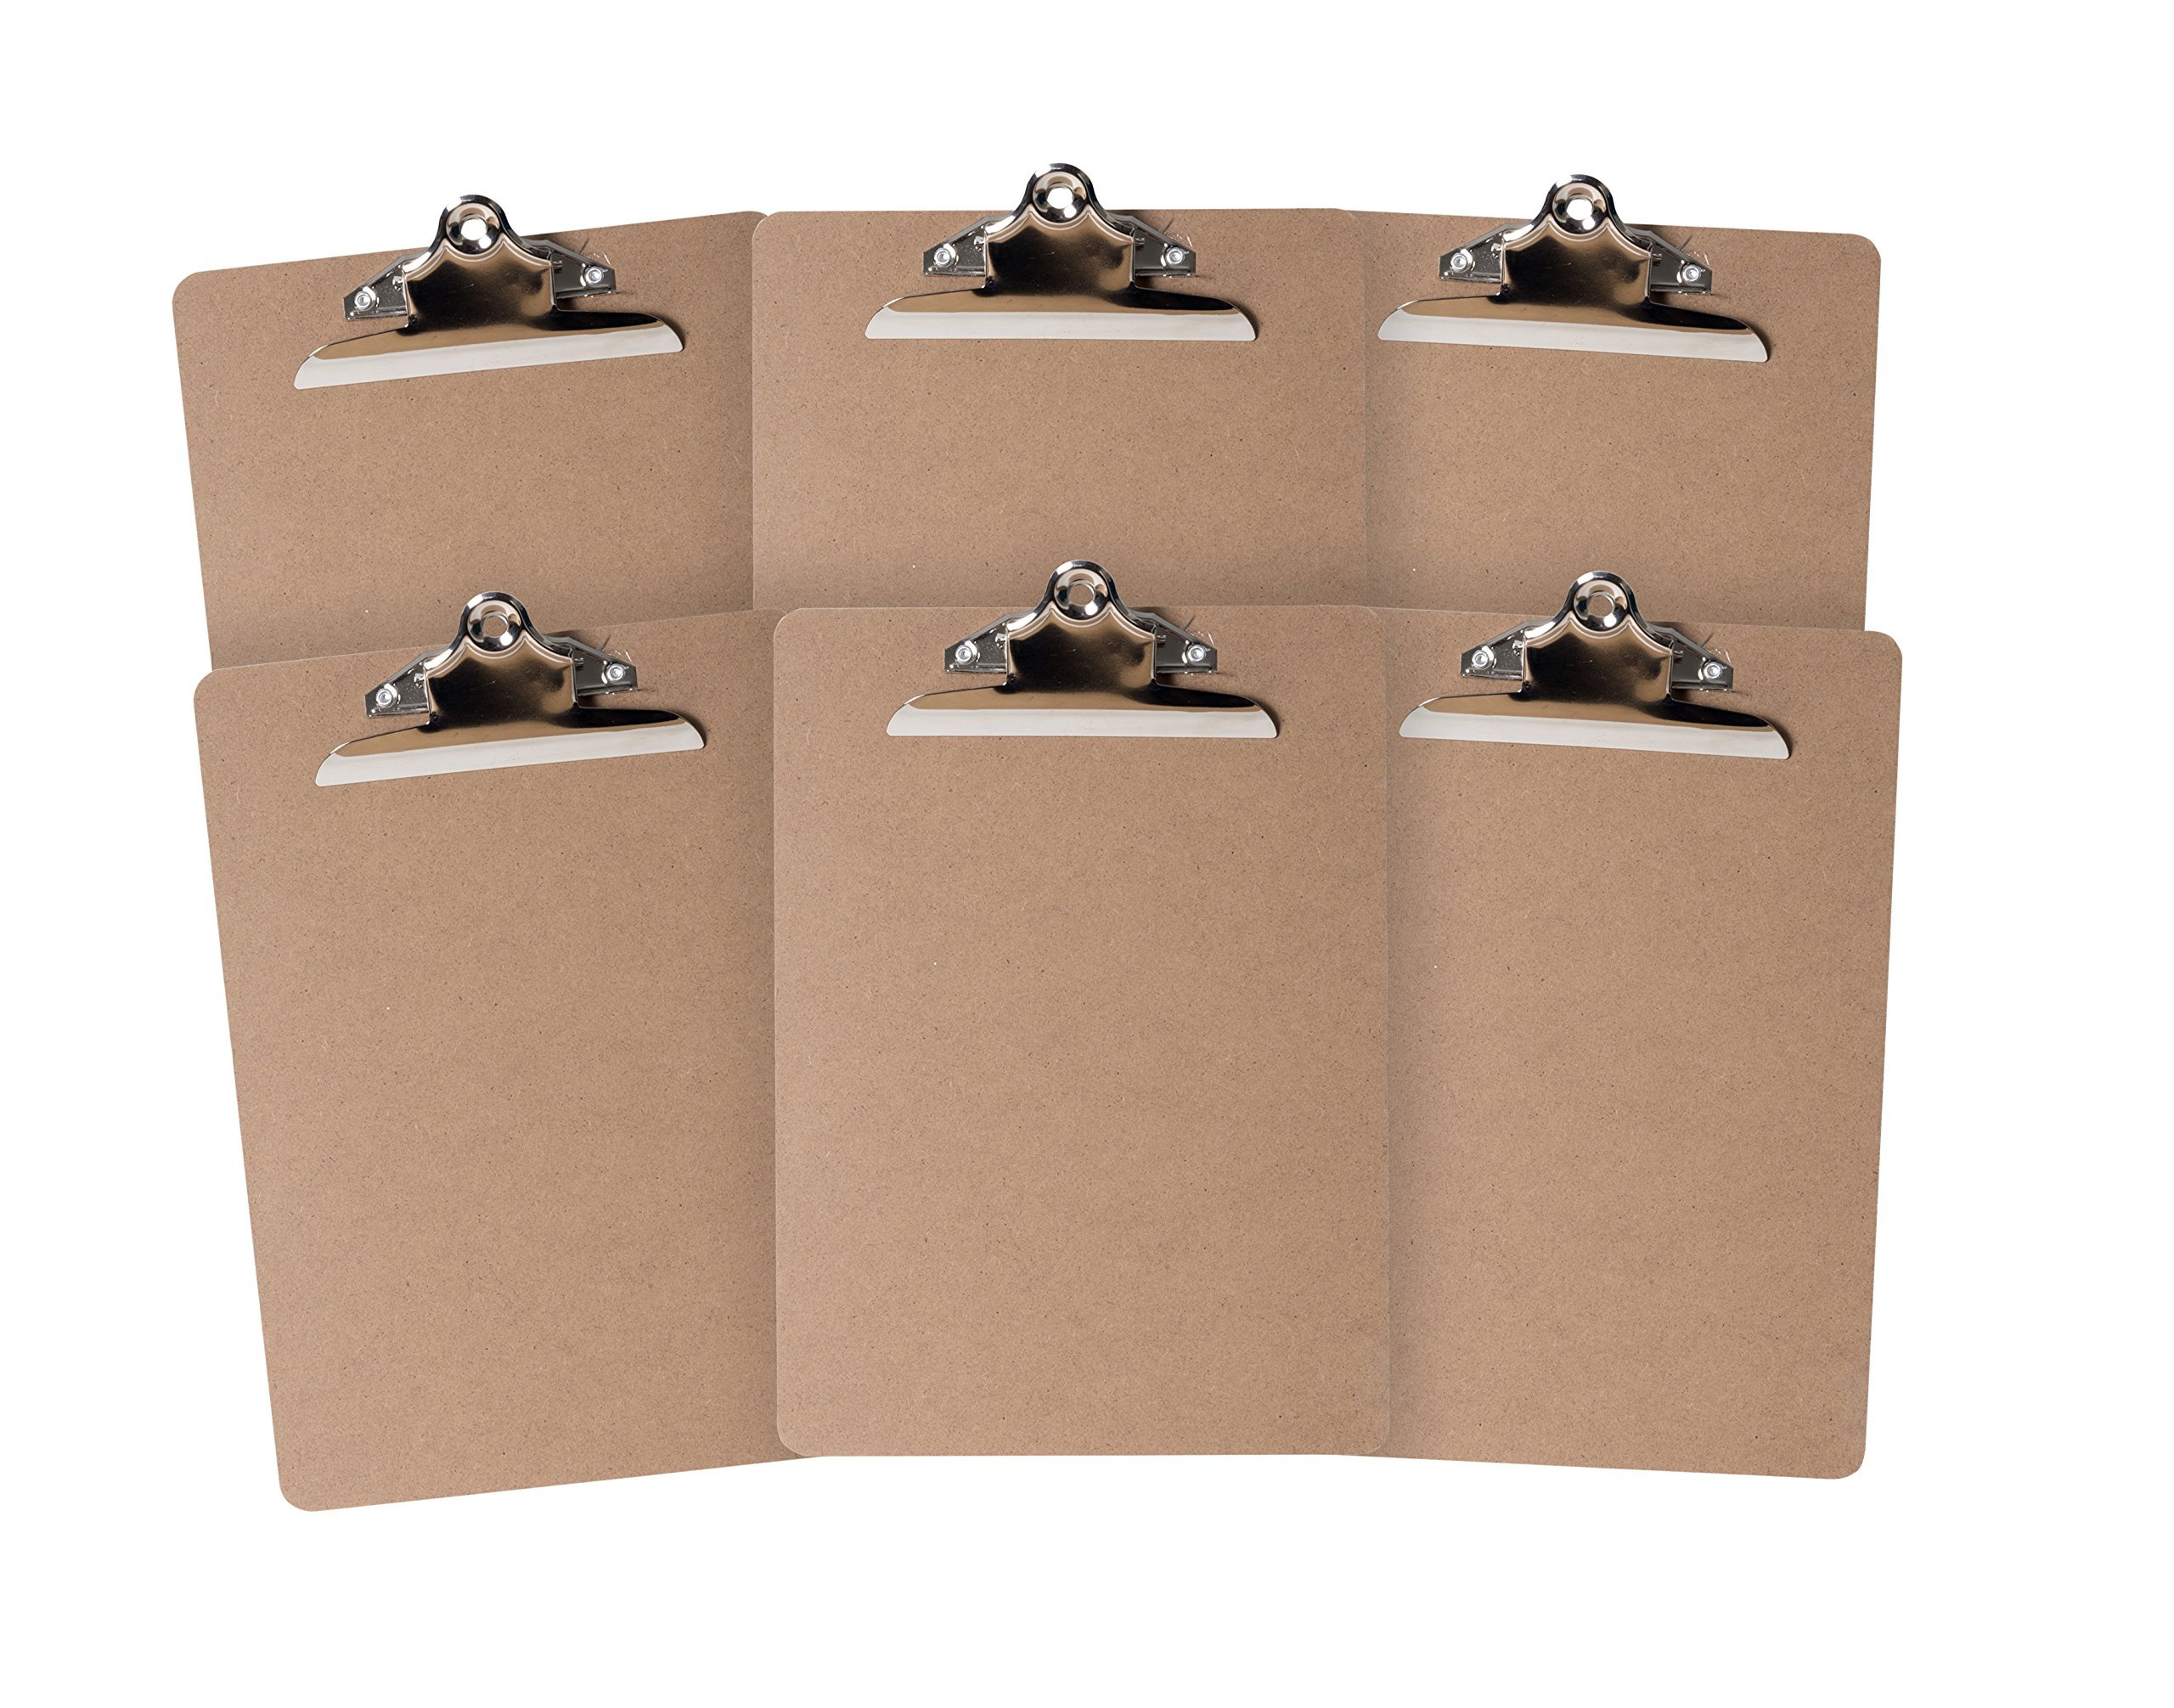 6 Hardboard Clipboards, Heavy Duty Clip, Design for classroom and office use, 6 Clipboards